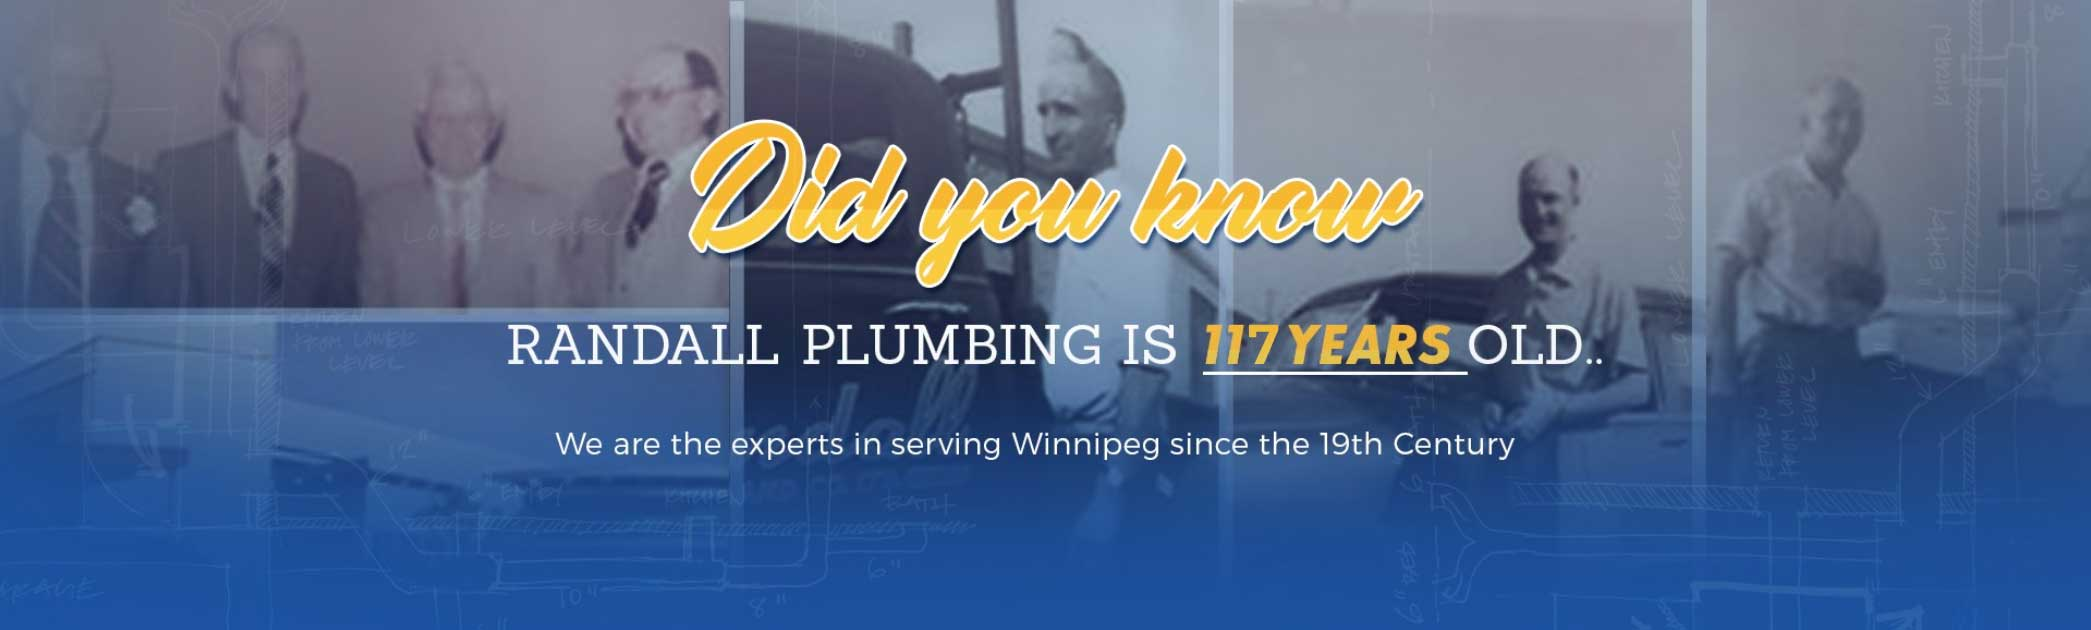 Randall Plumbing & Heating Ltd. Winnipeg